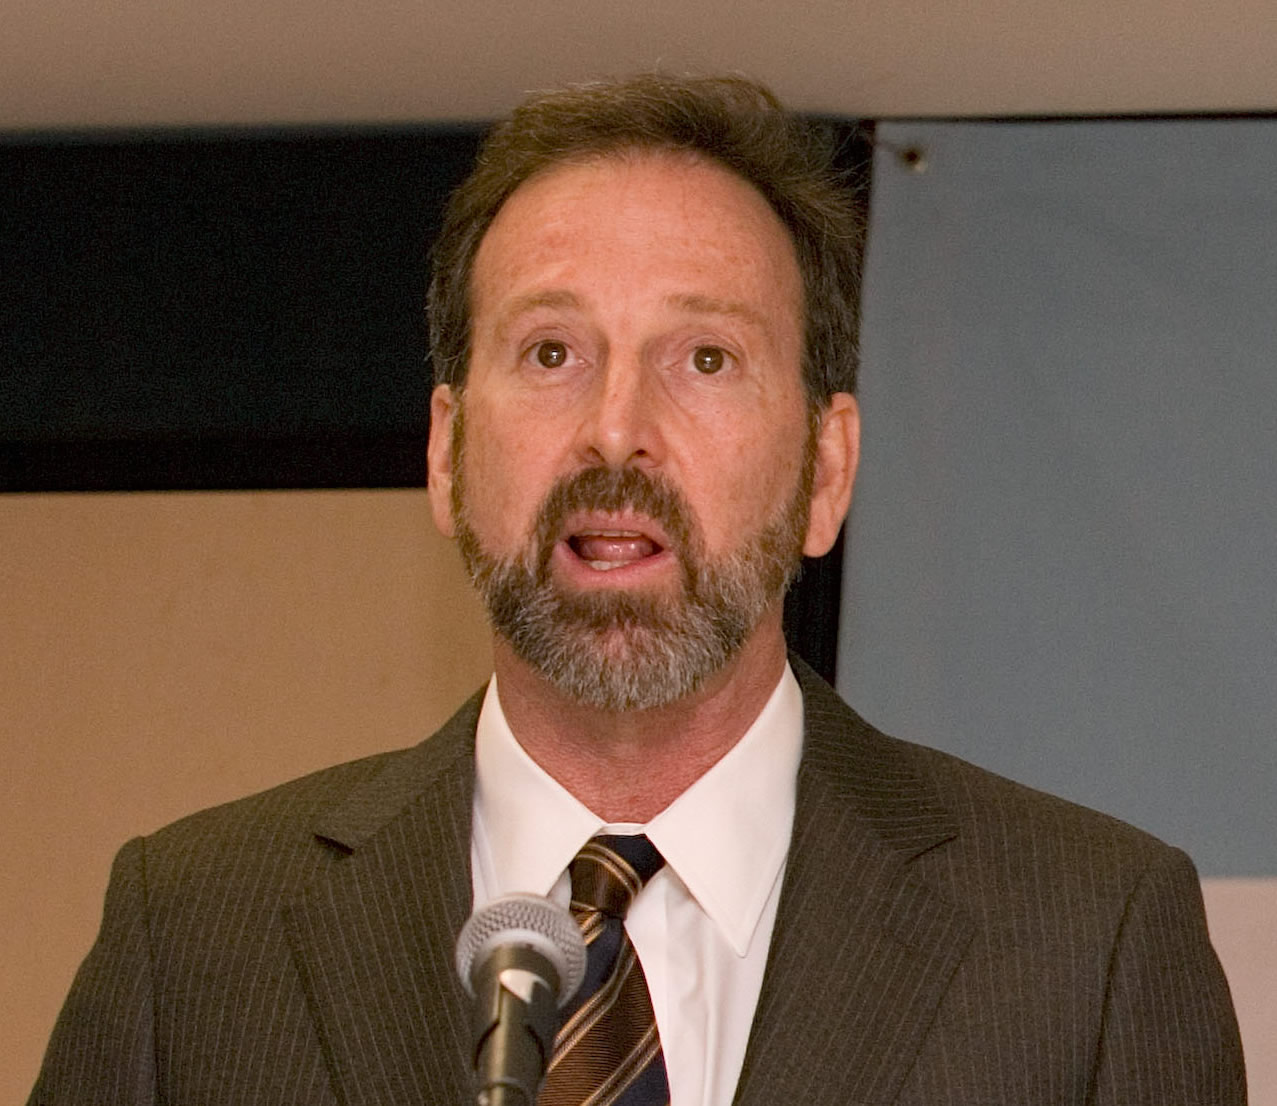 Antonio Garza, U.S. ambassador to Mexico in 2002-2009 (Photo: Google)